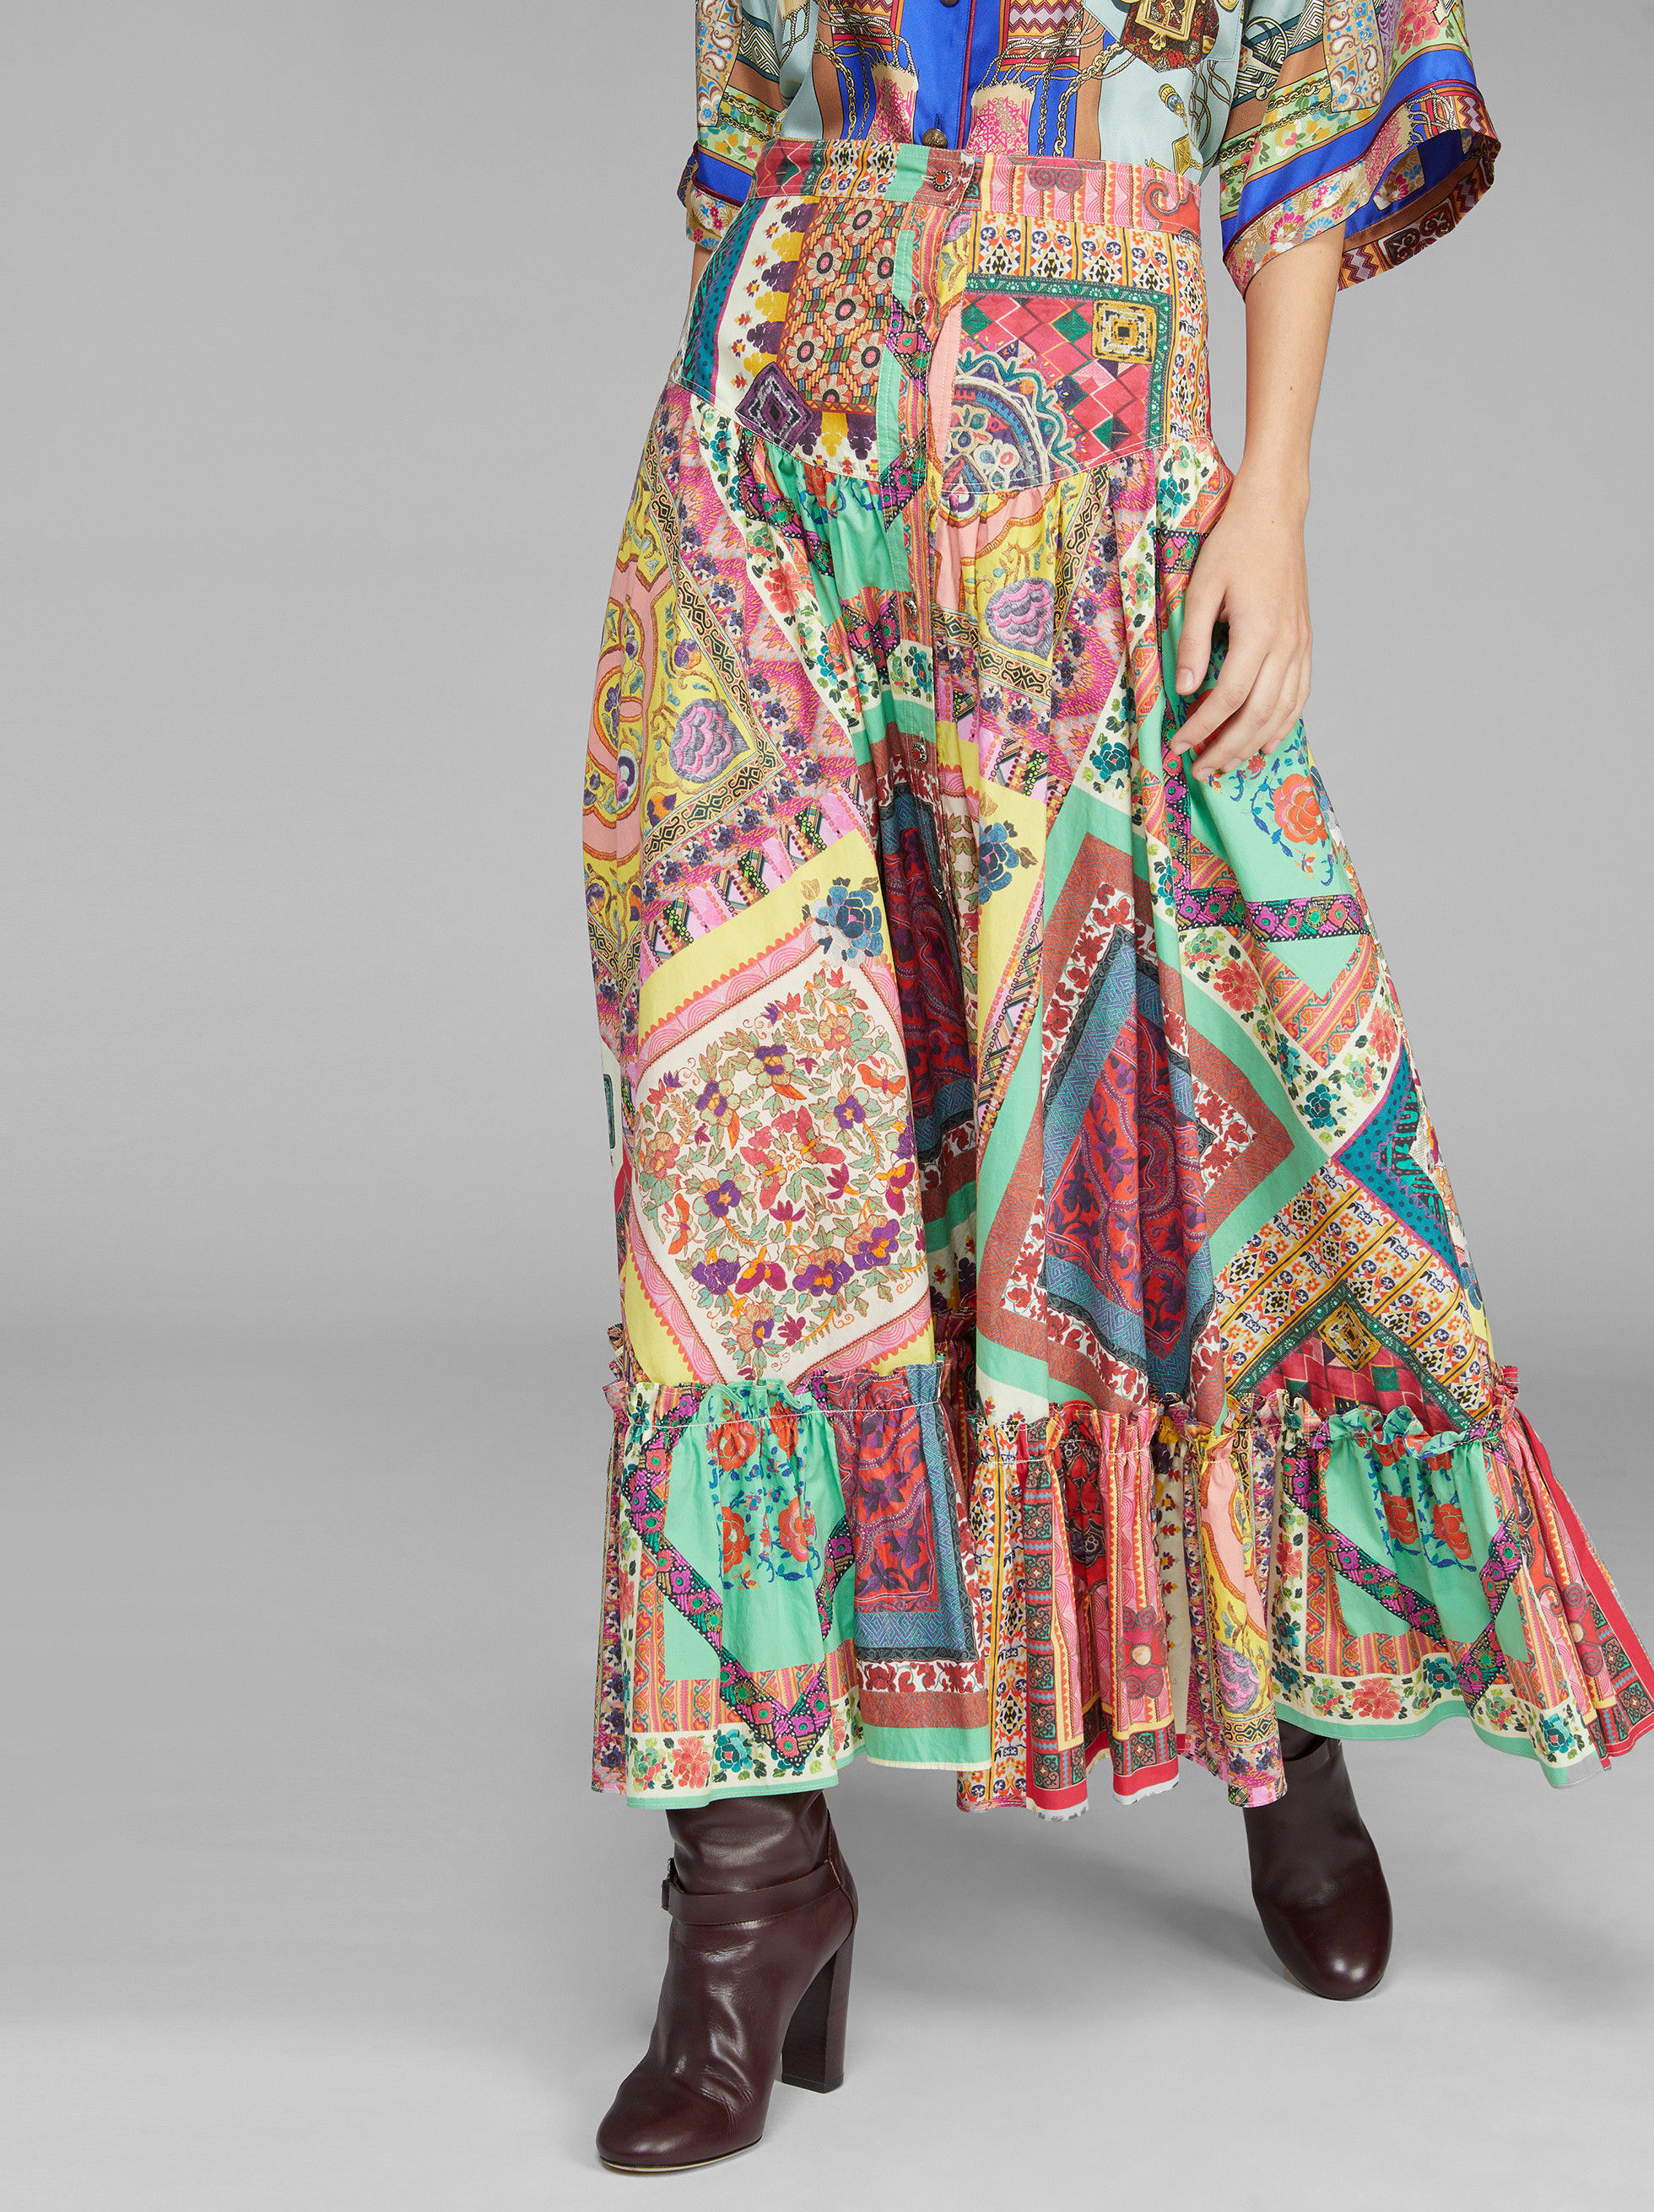 PATCHWORK PRINT SKIRT WITH RUCHES